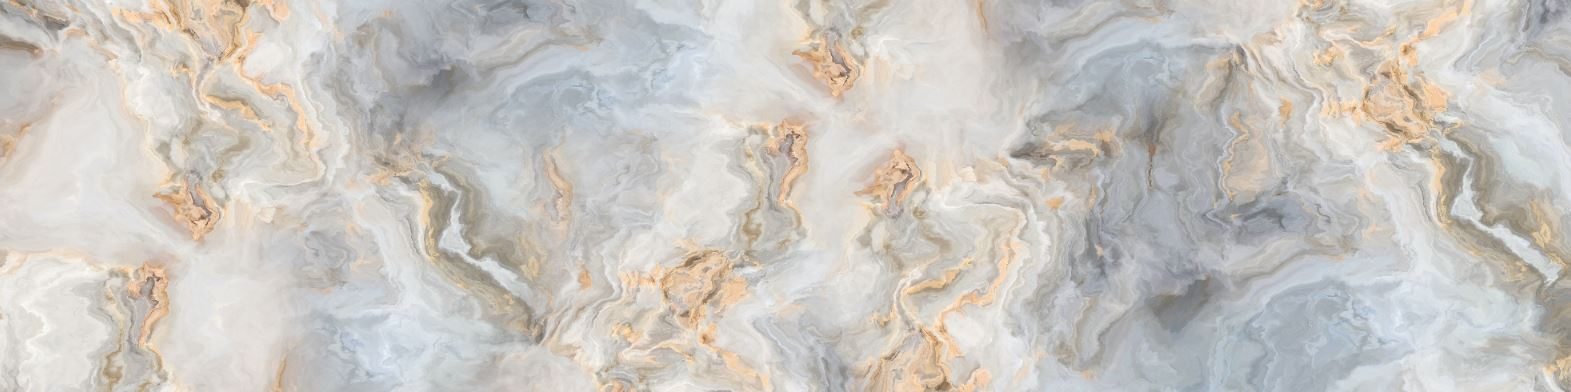 ARCH 2019-1a Marble Gold Vein